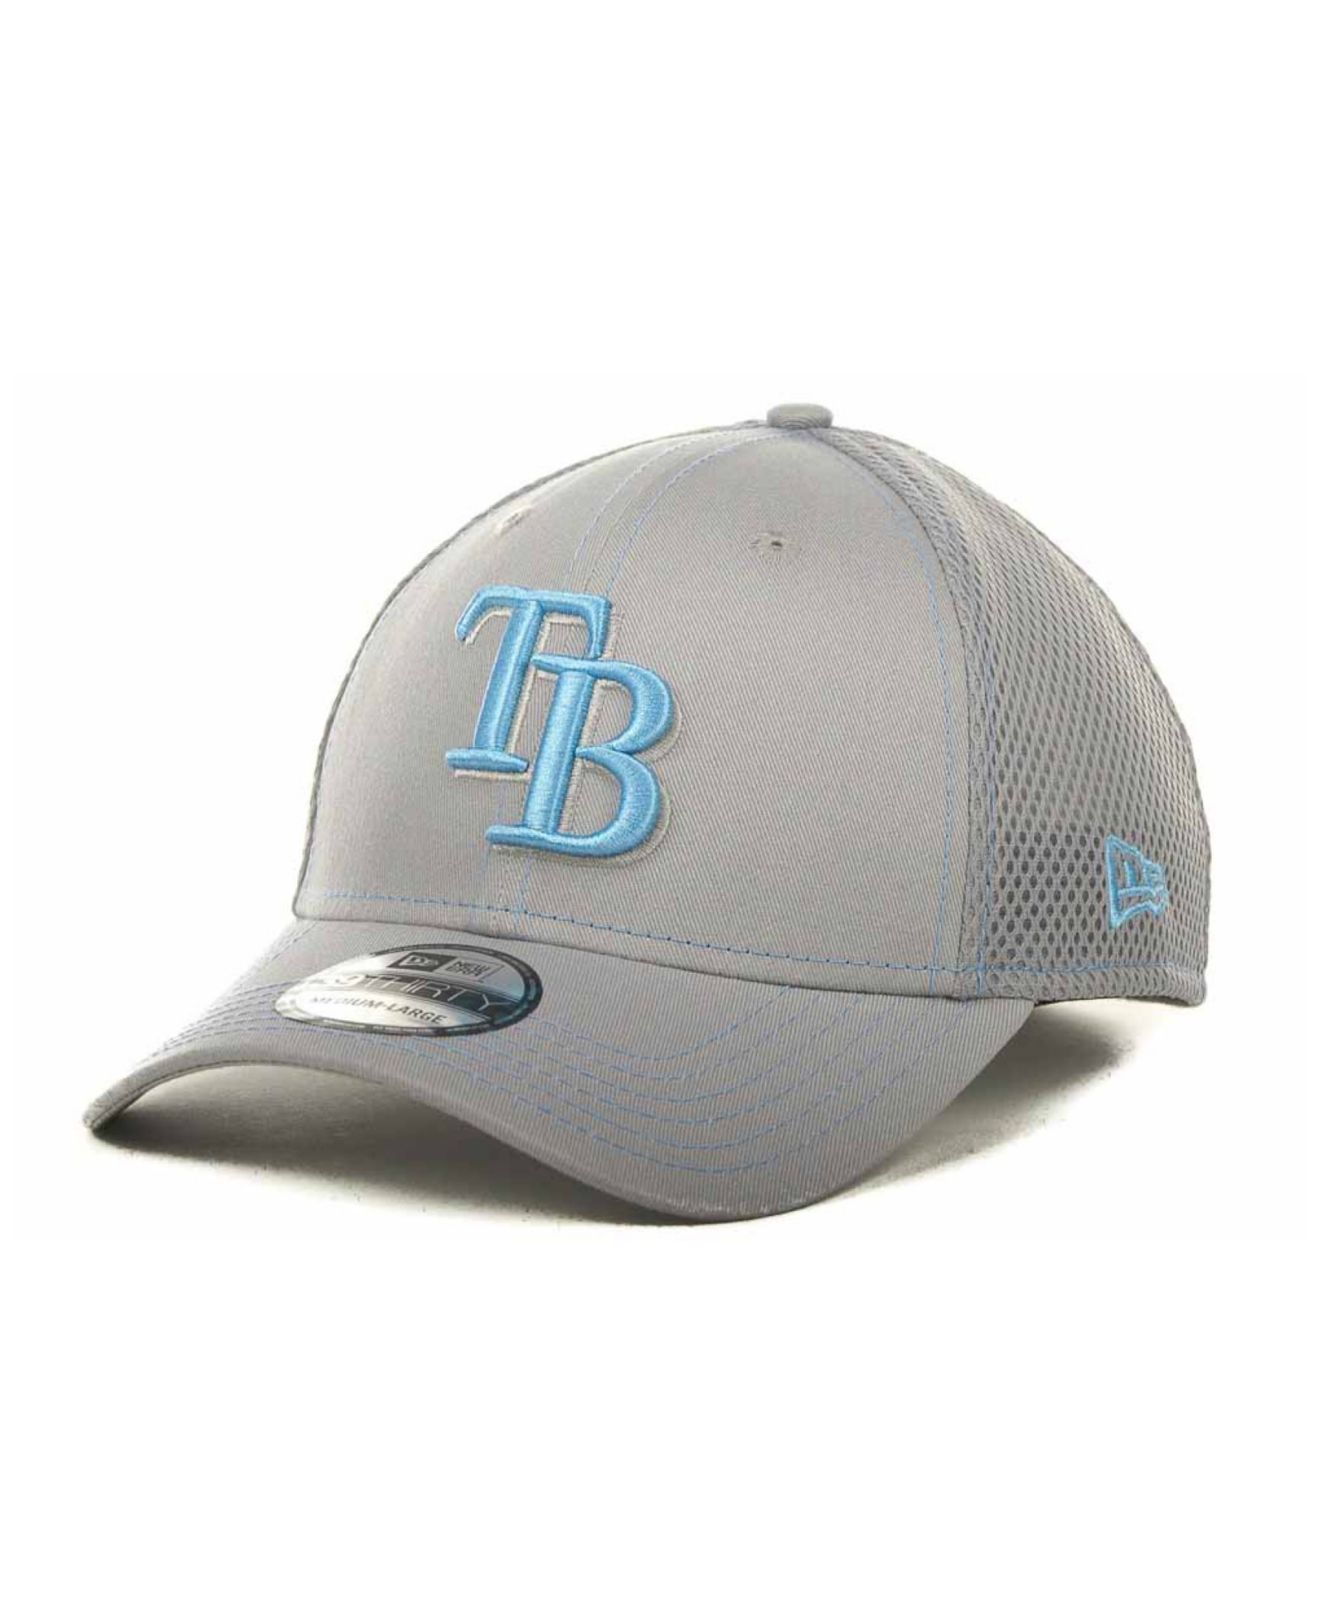 newest caa17 ac9bc KTZ Tampa Bay Rays Mlb Gray Neo 39thirty Cap in Gray for Men - Lyst